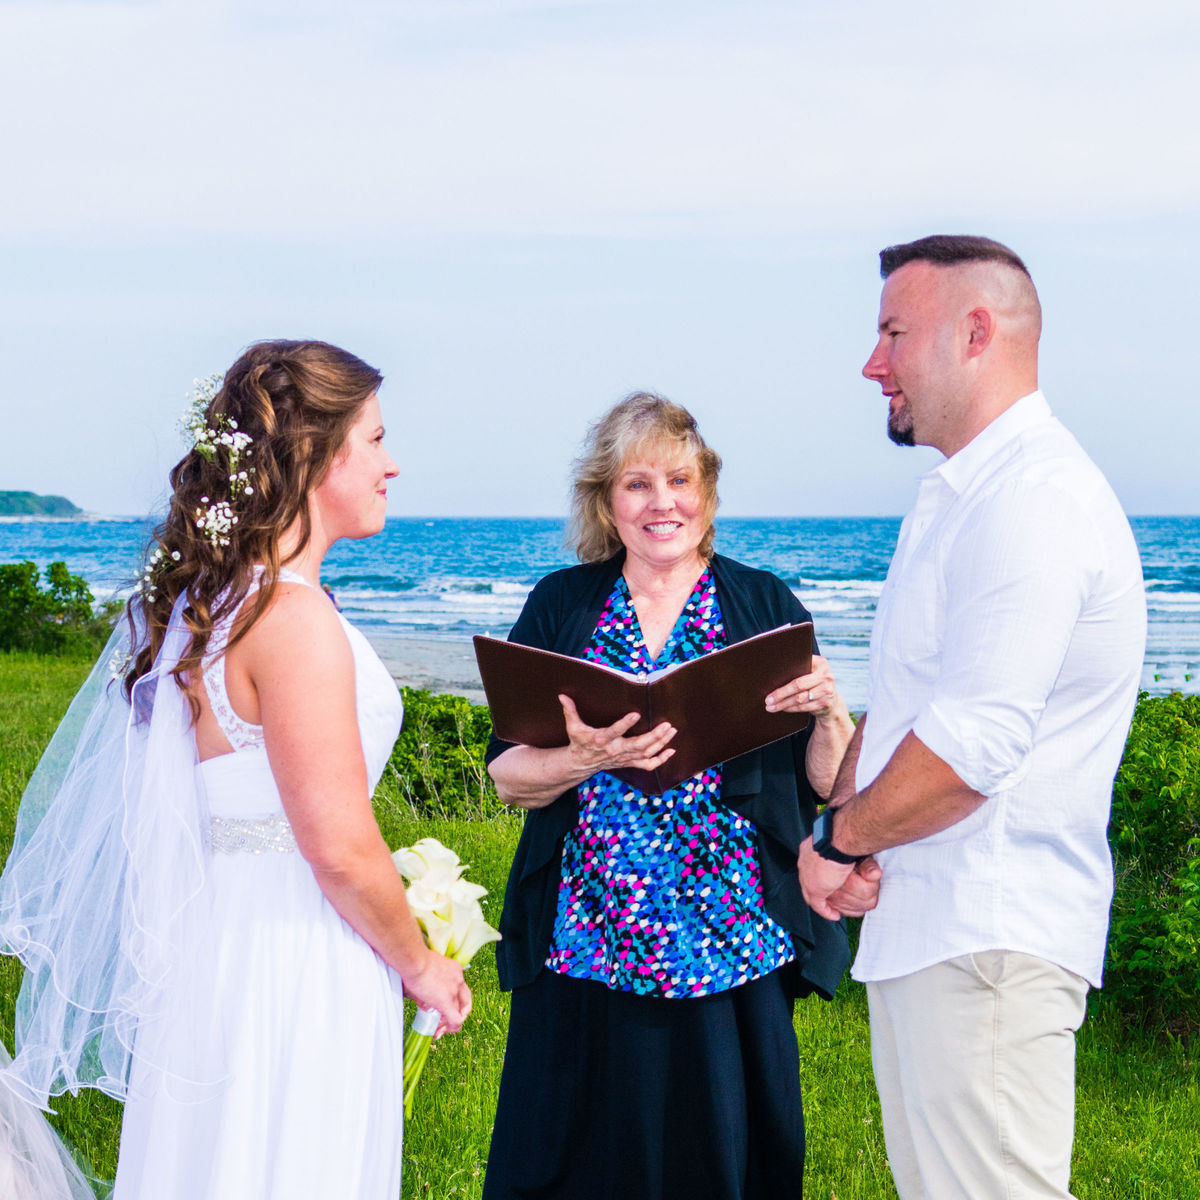 The 10 Best Wedding Venues In Newport Ri: Weddings With A Heart